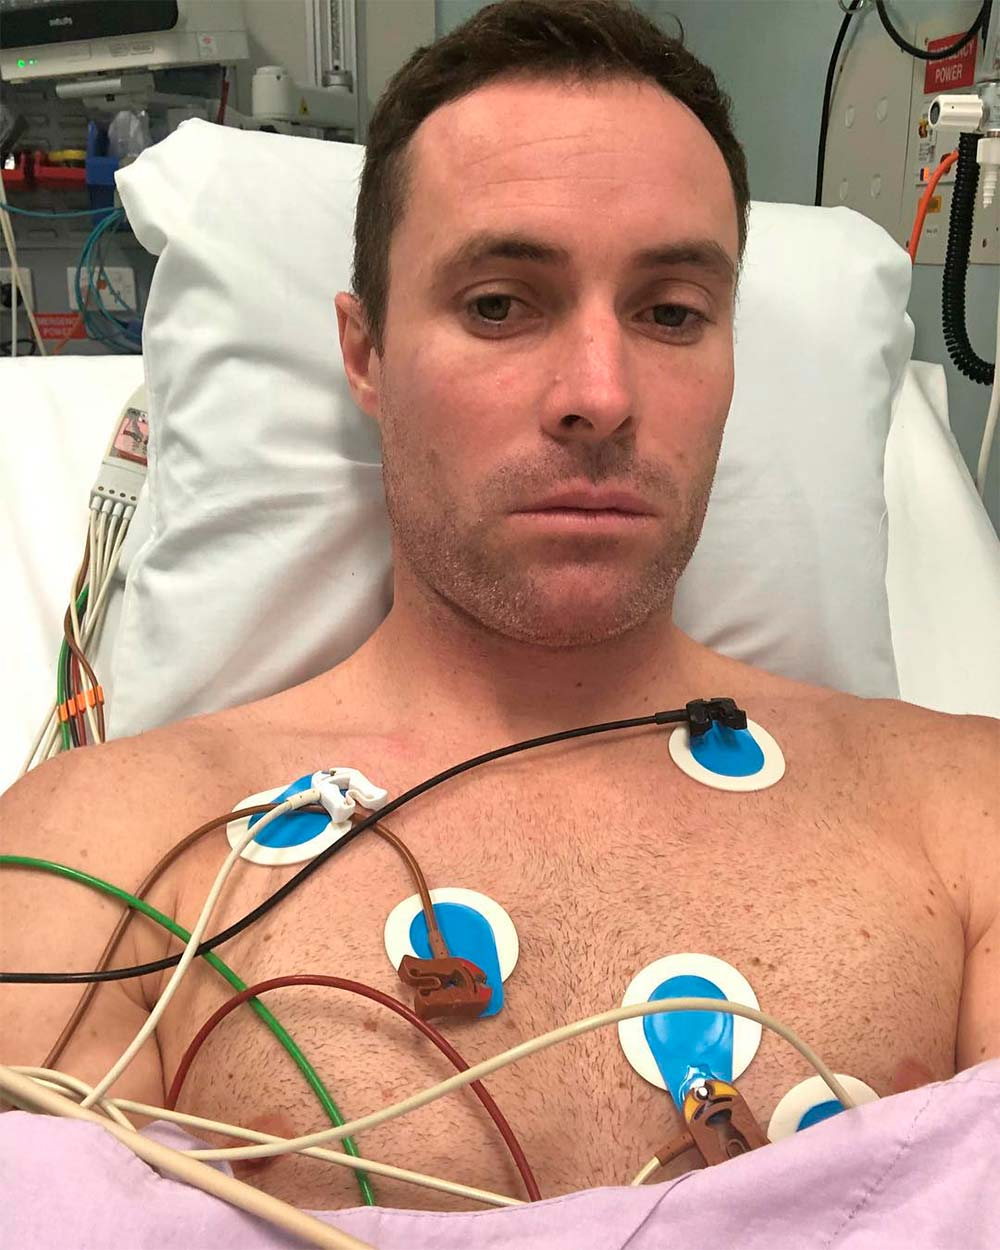 Jared Graves, estrella australiana del Mountain Bike, anuncia que tiene un tumor cerebral